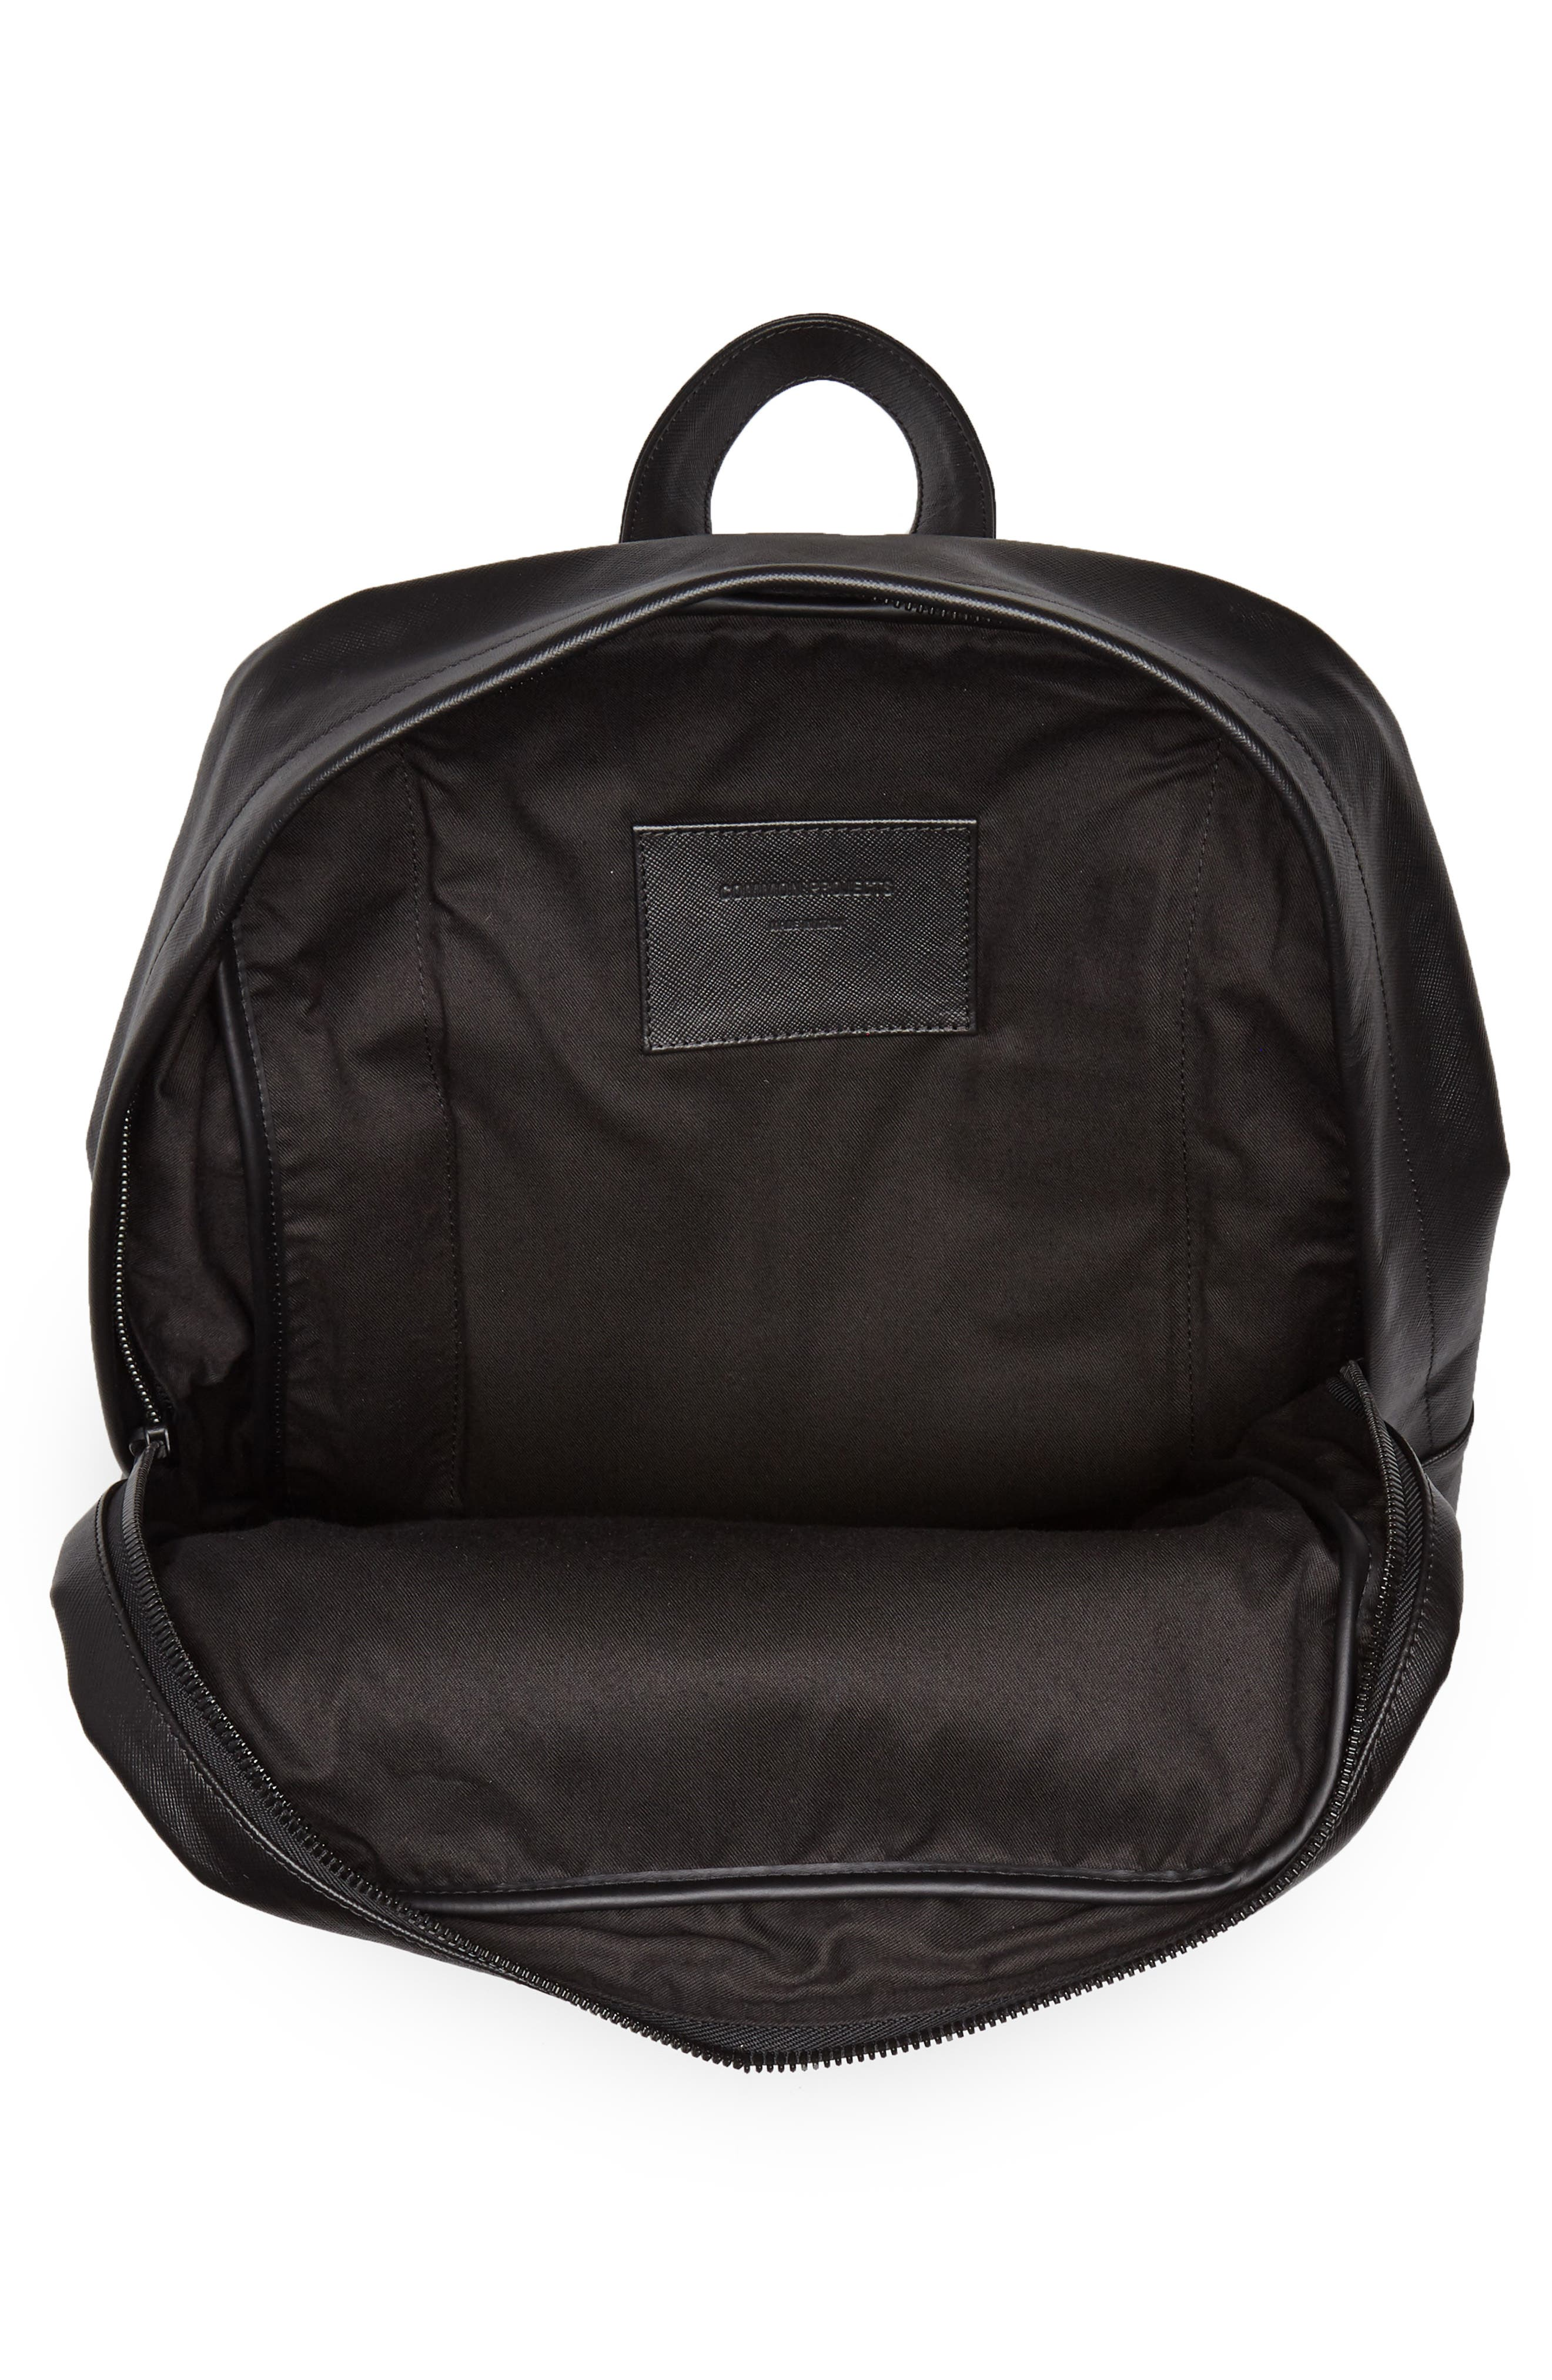 Saffiano Leather Backpack,                             Alternate thumbnail 4, color,                             001